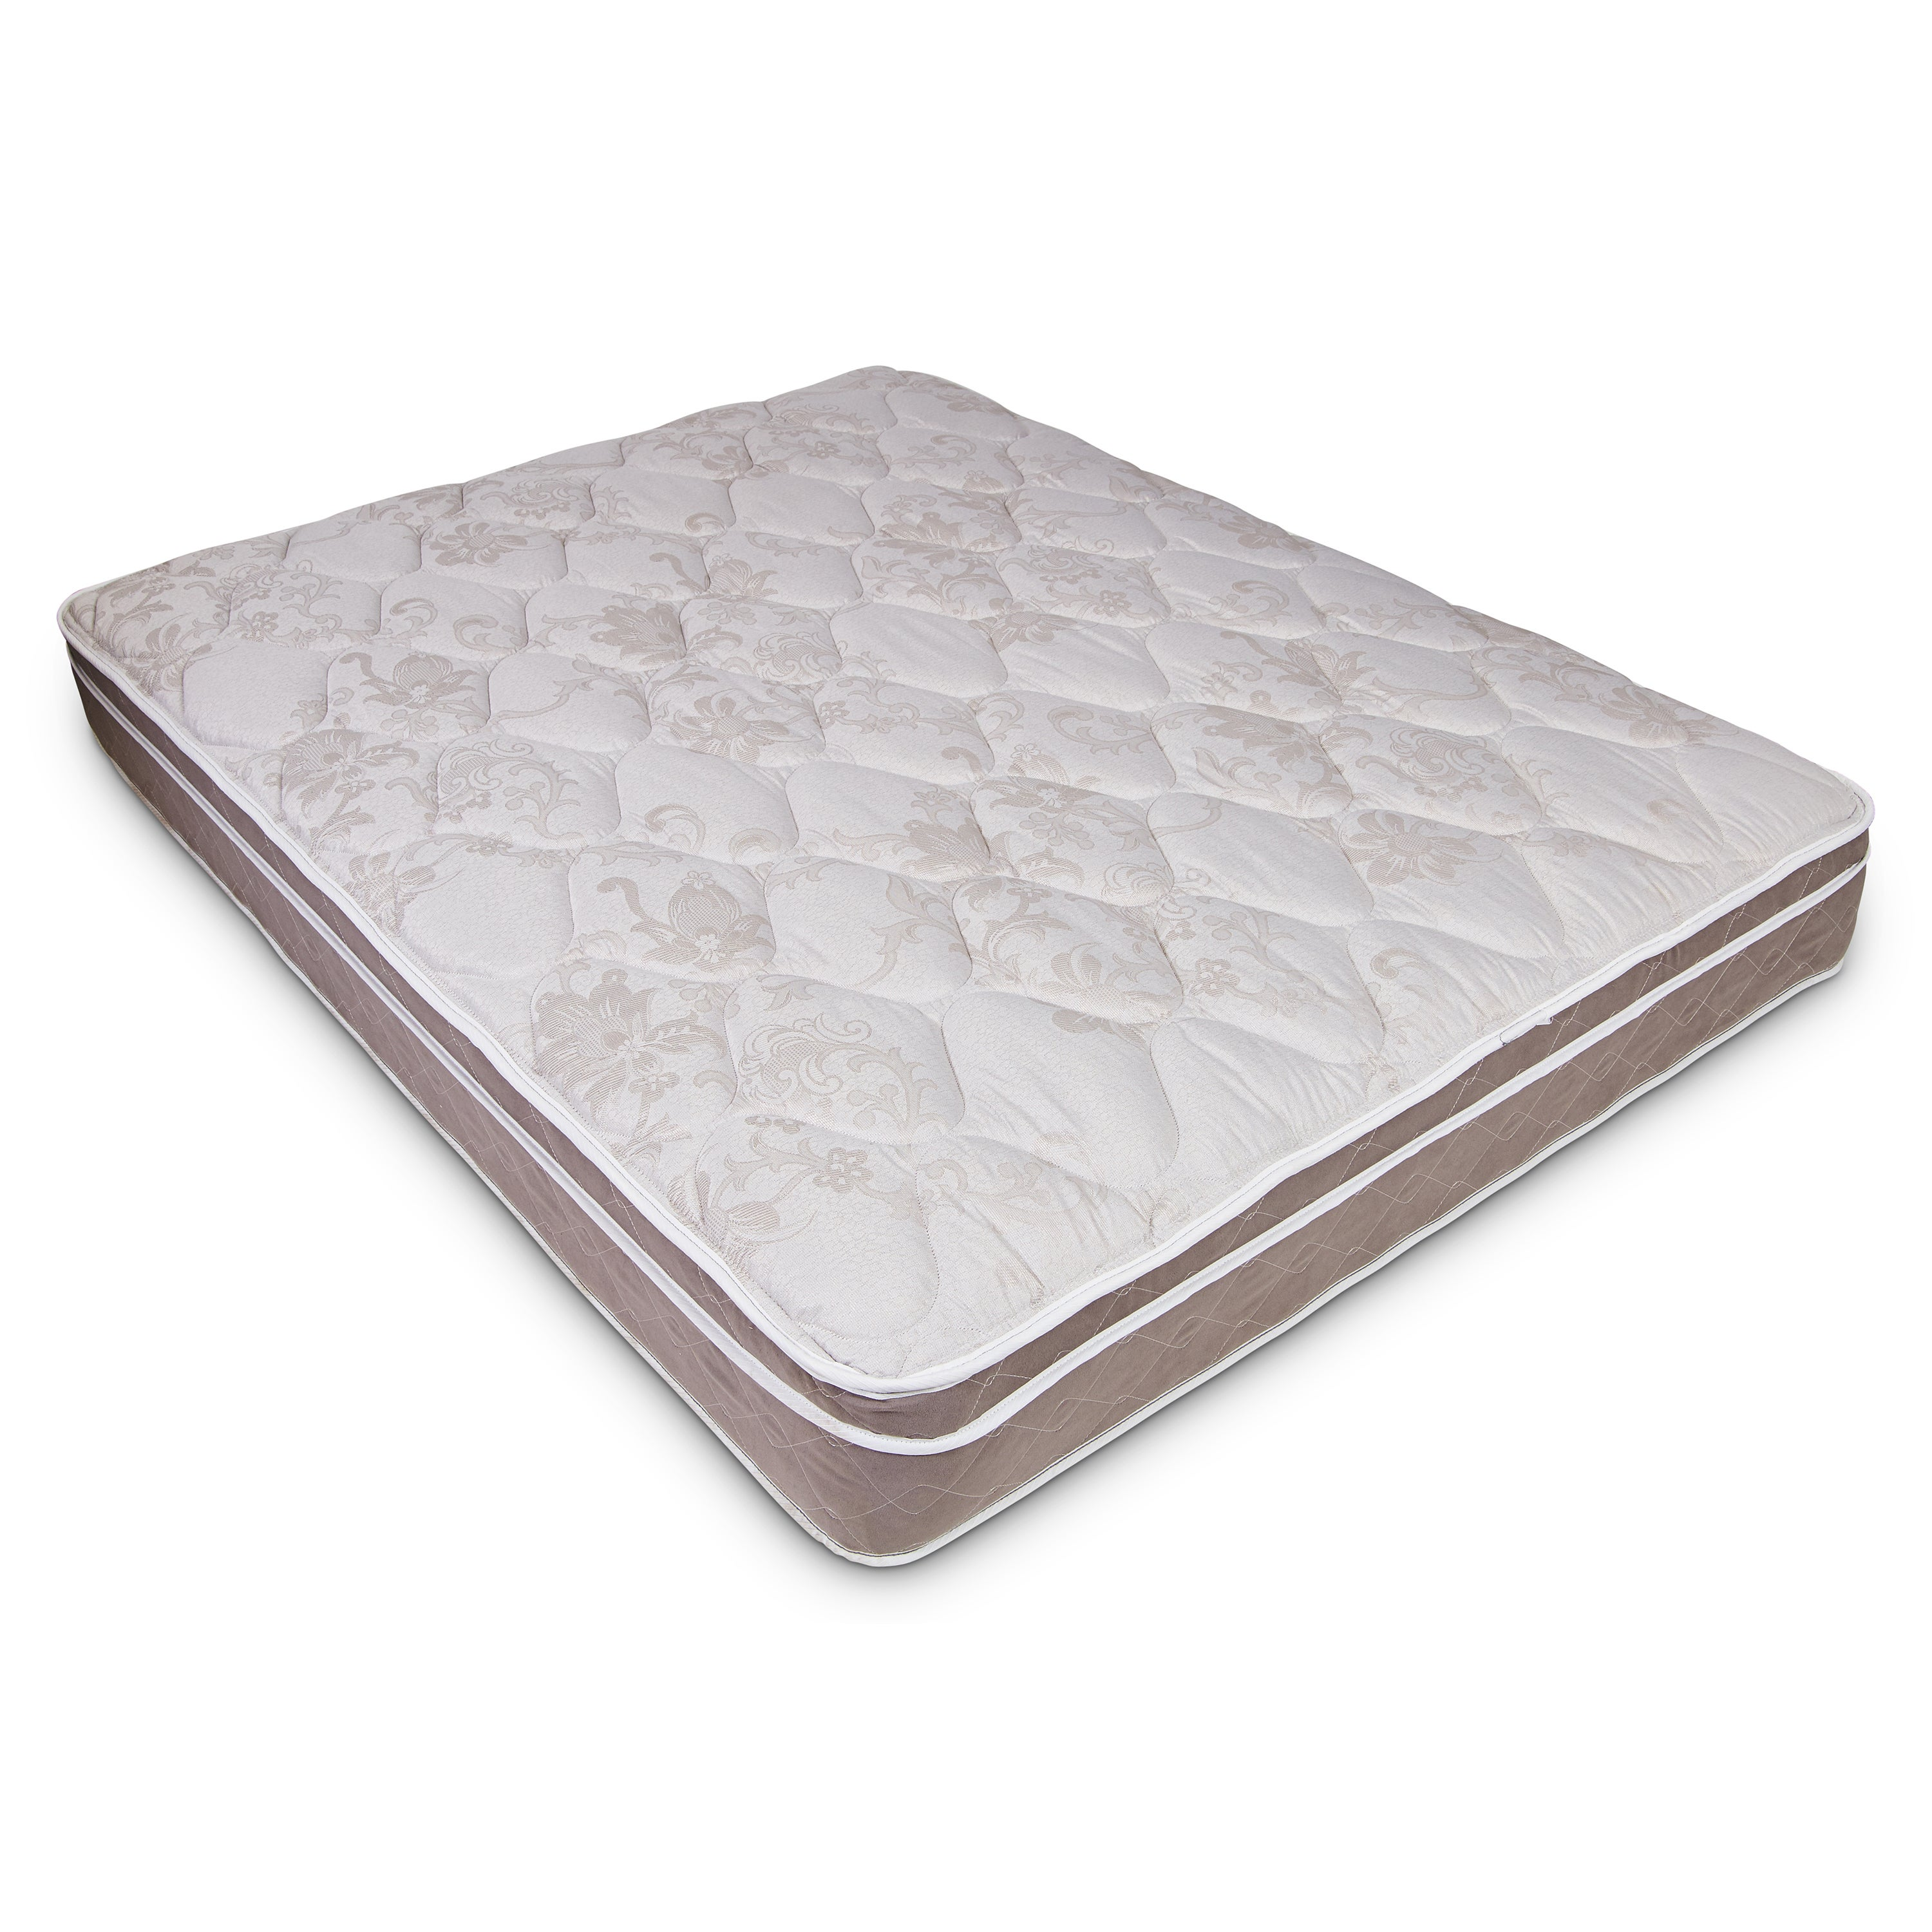 never air turn mattress sears awesome domoom pillow queen top short spring of